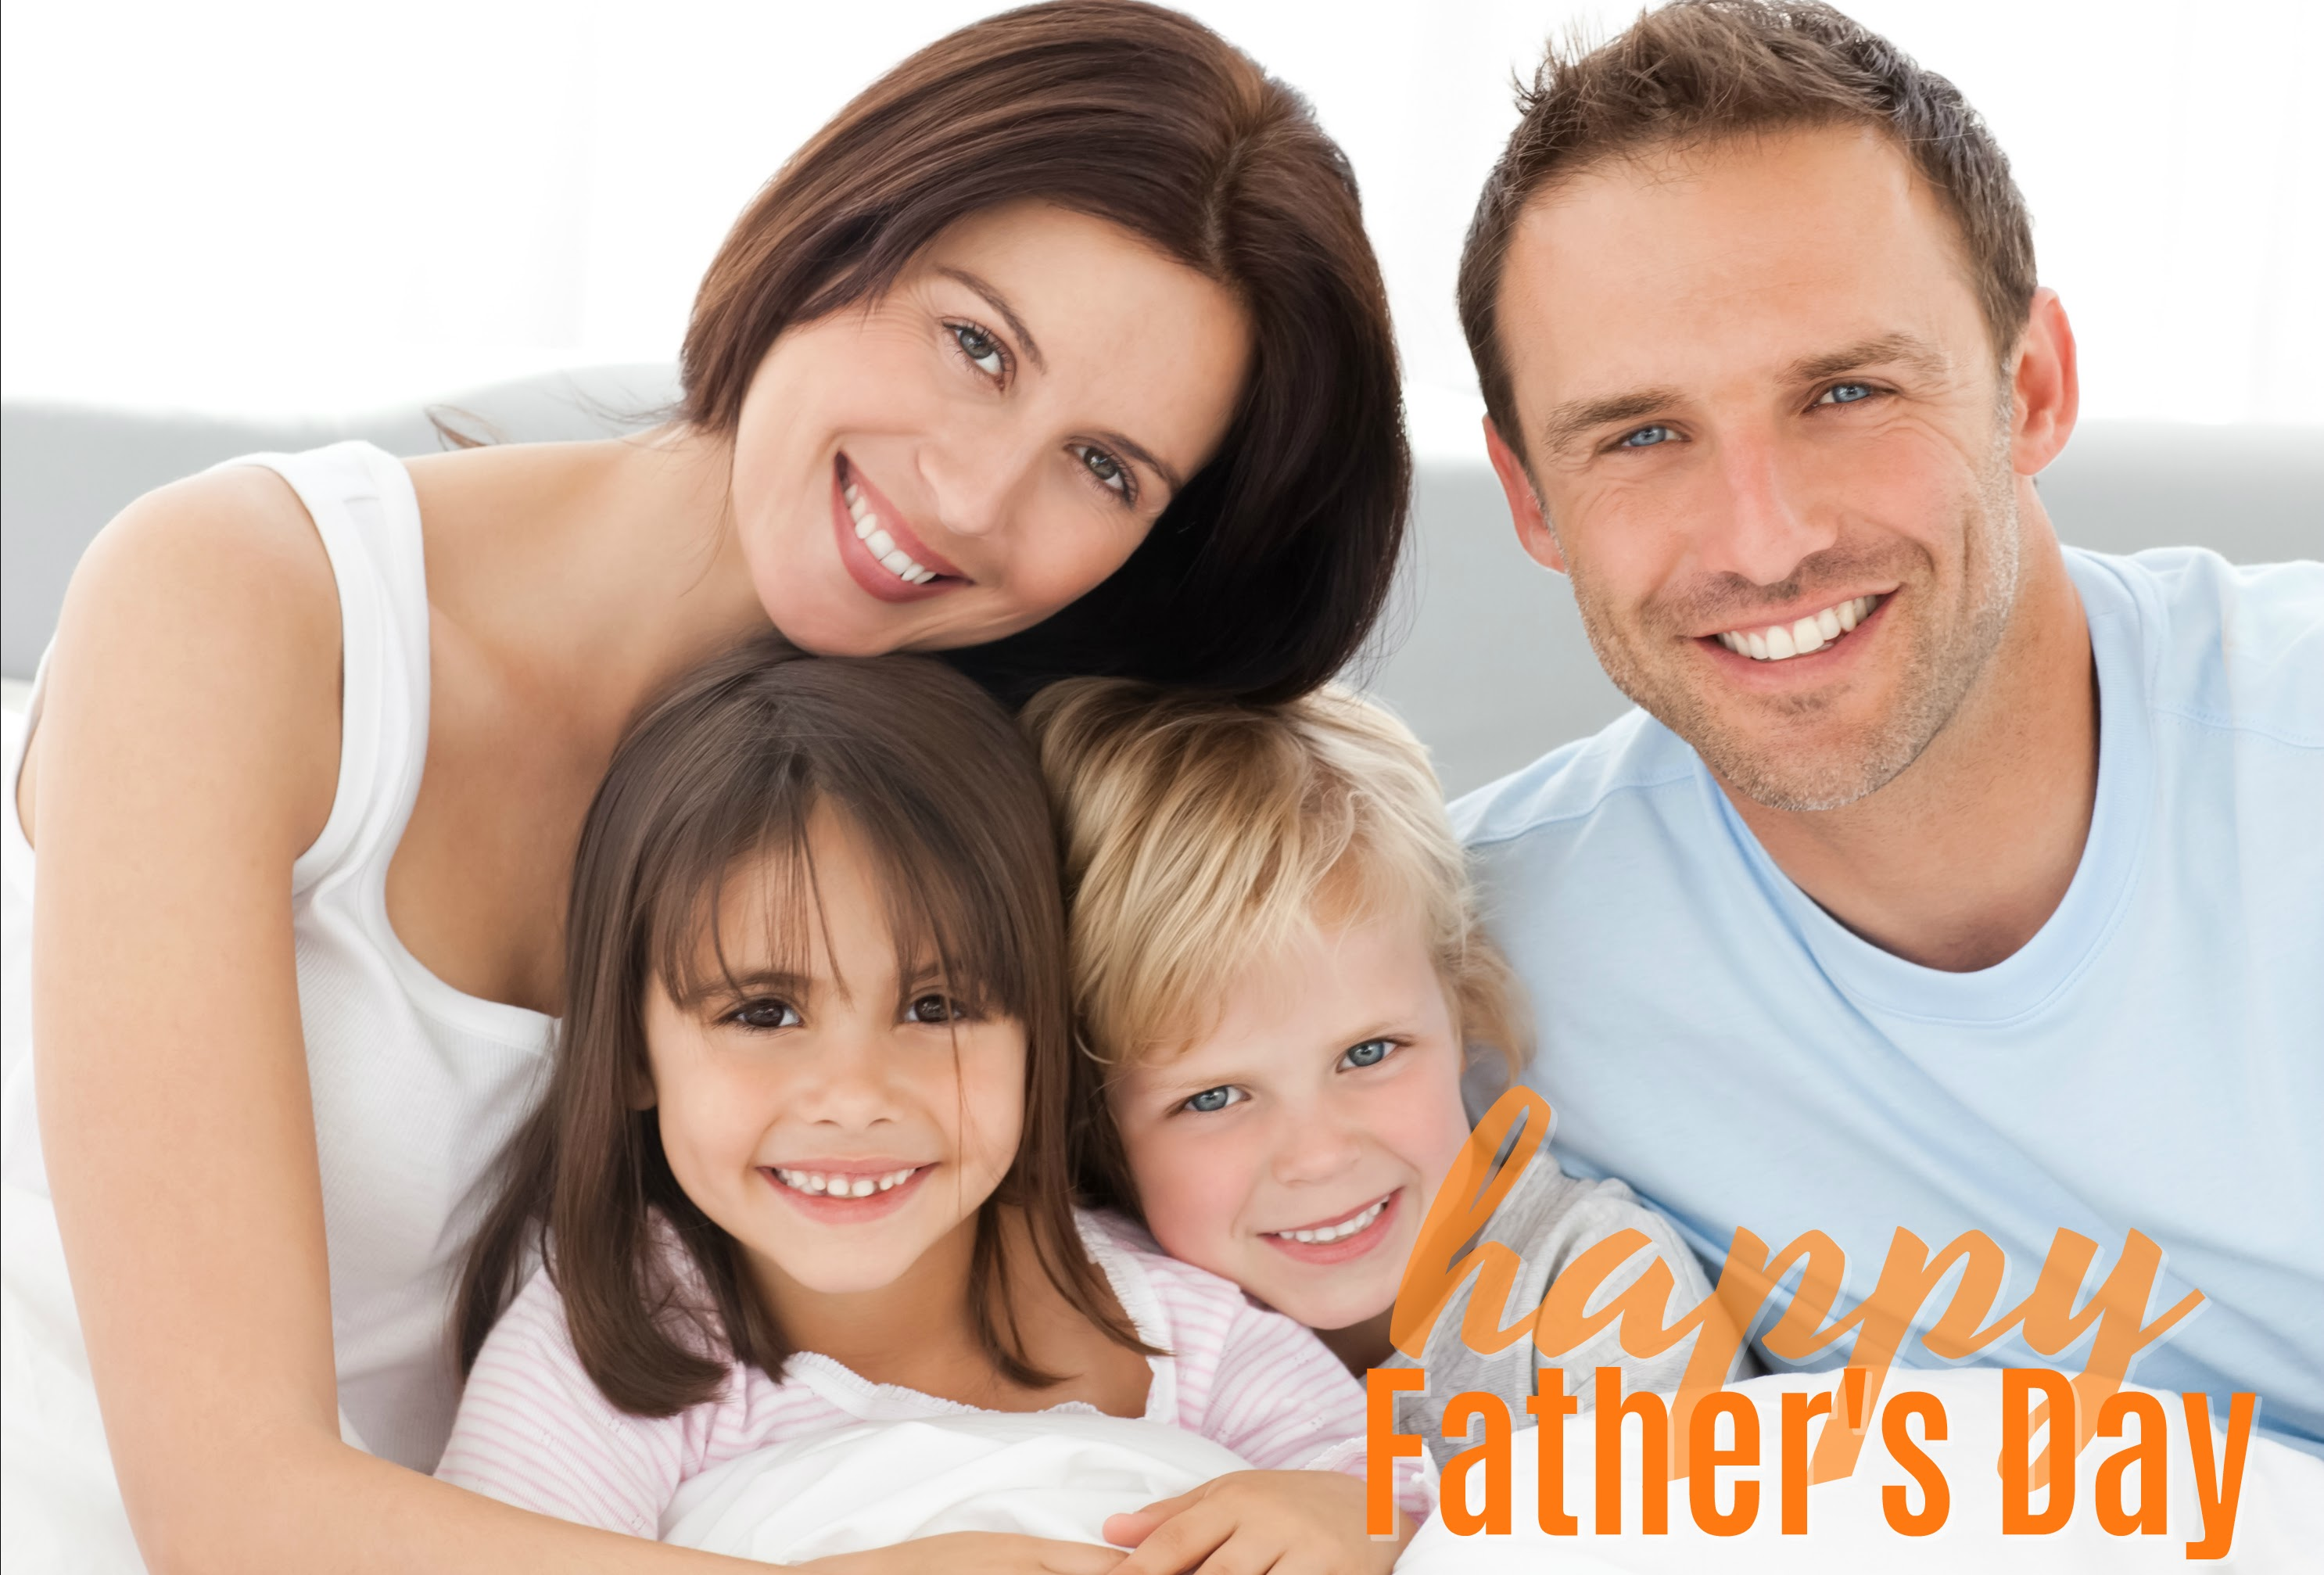 Father's Day Gift Guide - TimeLess Medical Spa & Weight Loss Gift Ideas for Dad